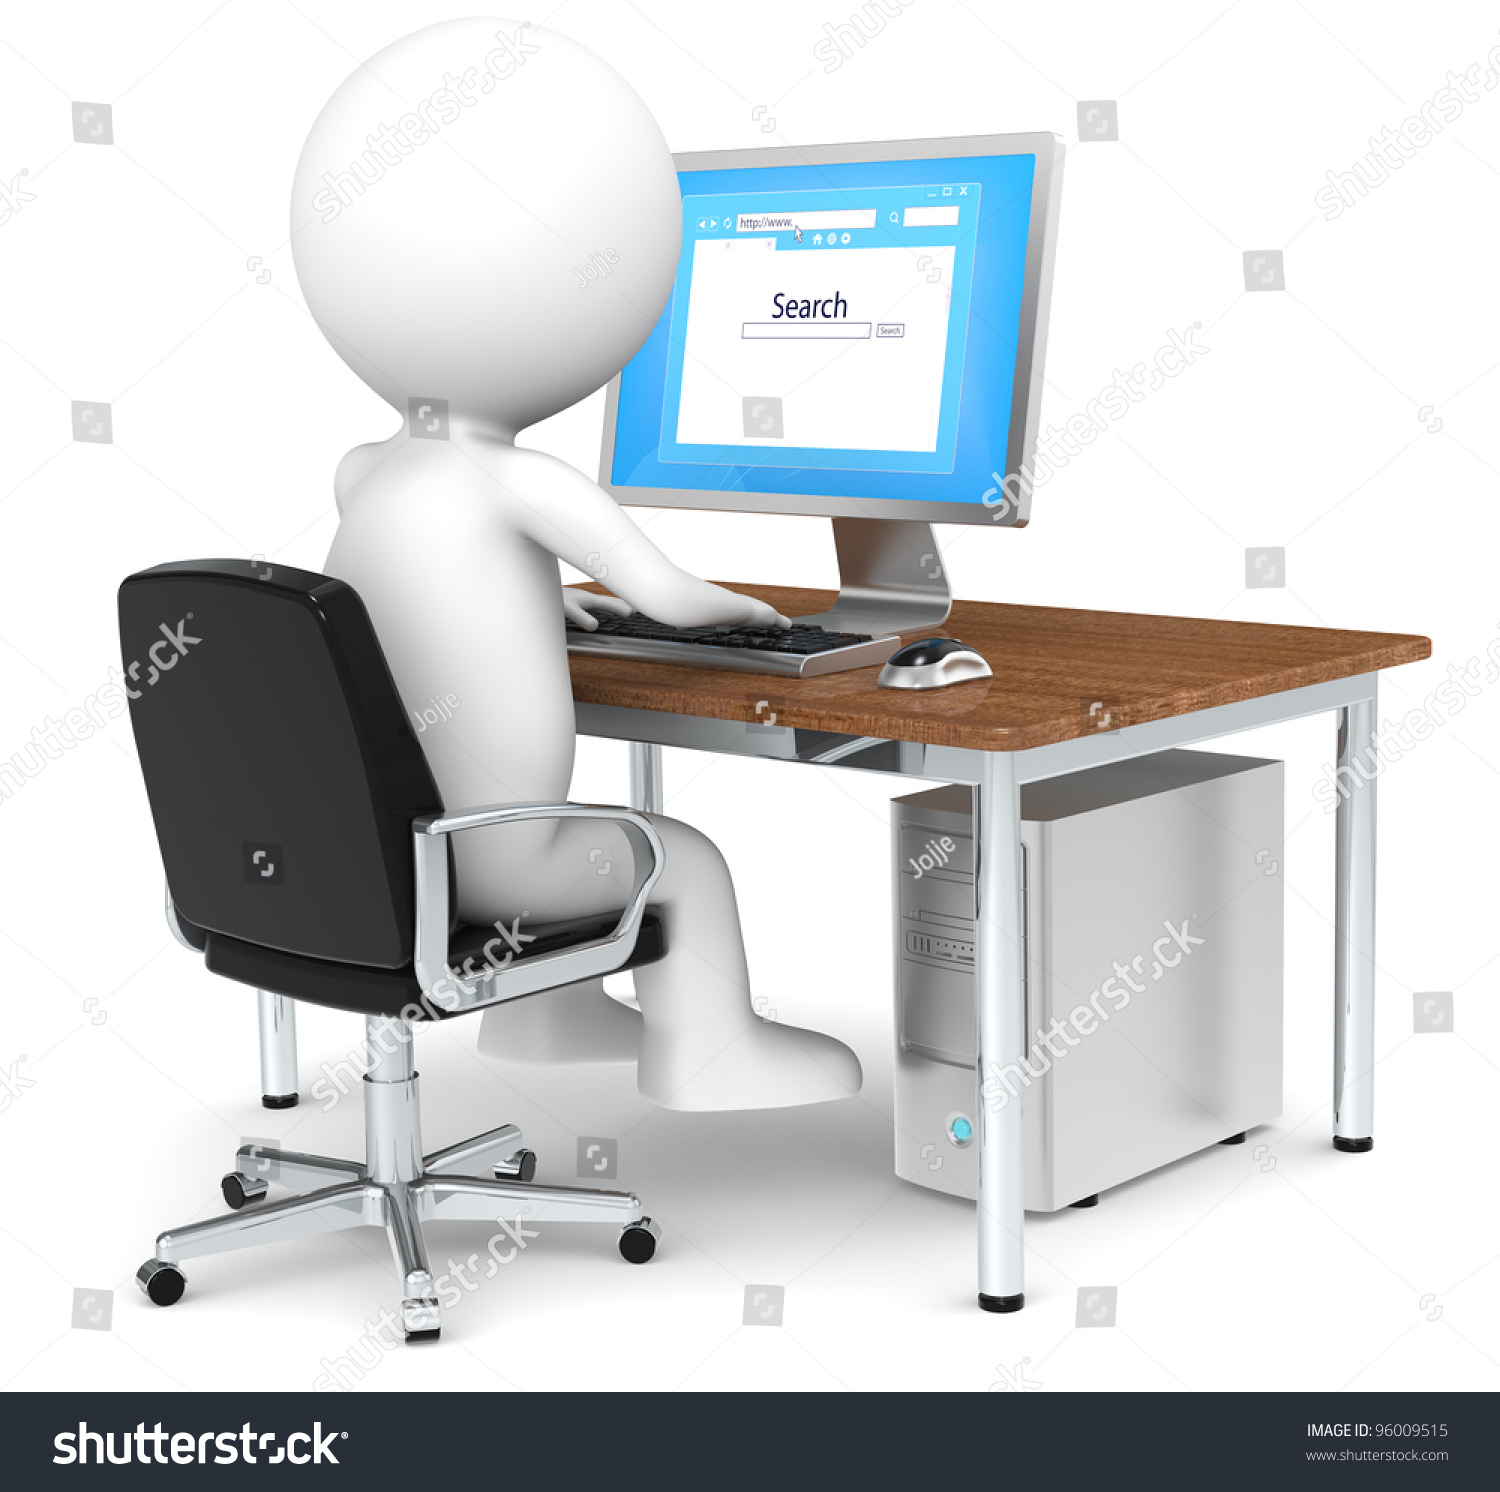 search d little human character searching stock illustration search 3d little human character searching on internet blue screen business people series